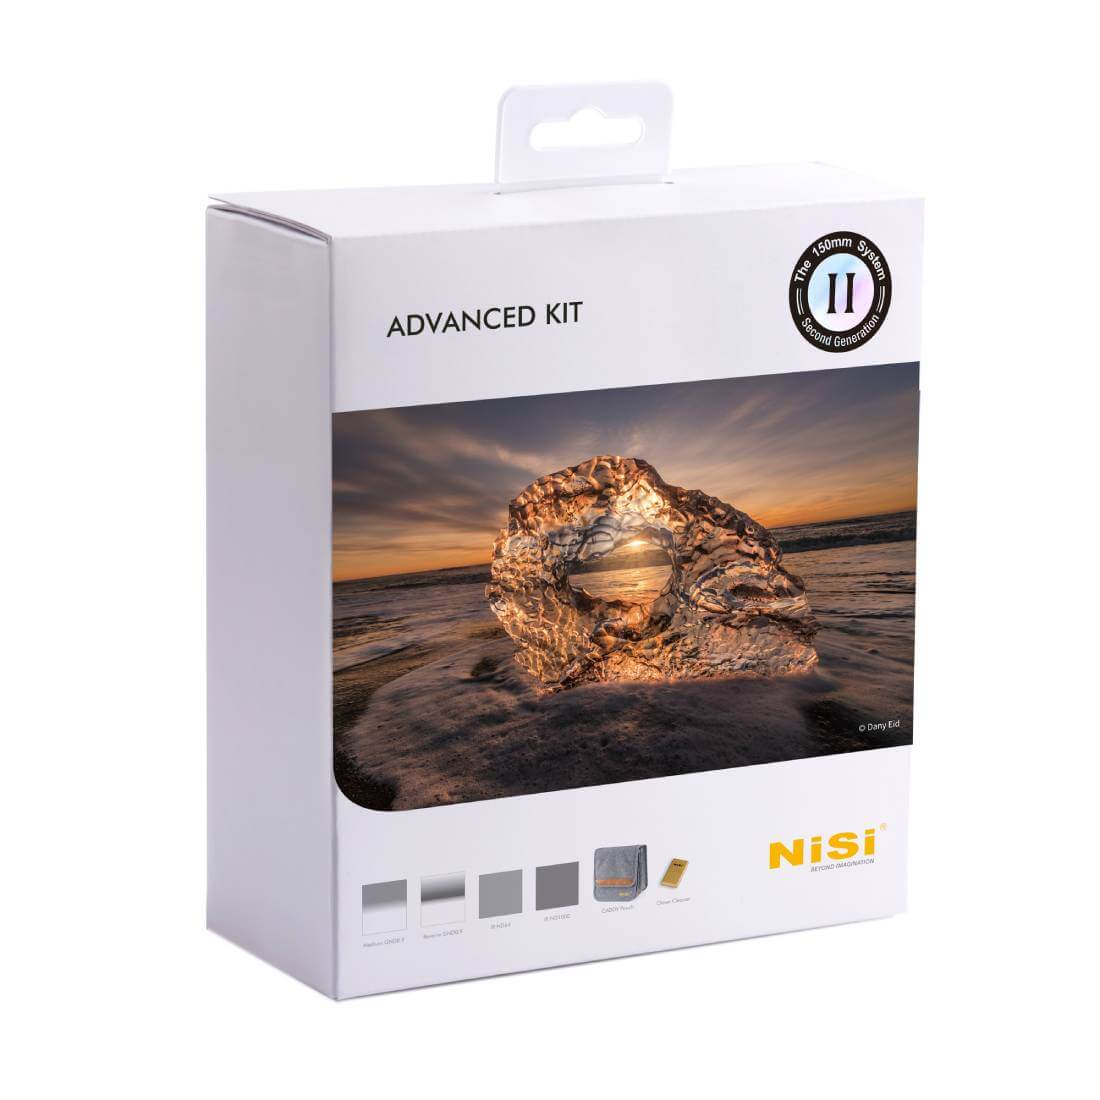 NiSi Advanced Kit 150 mm